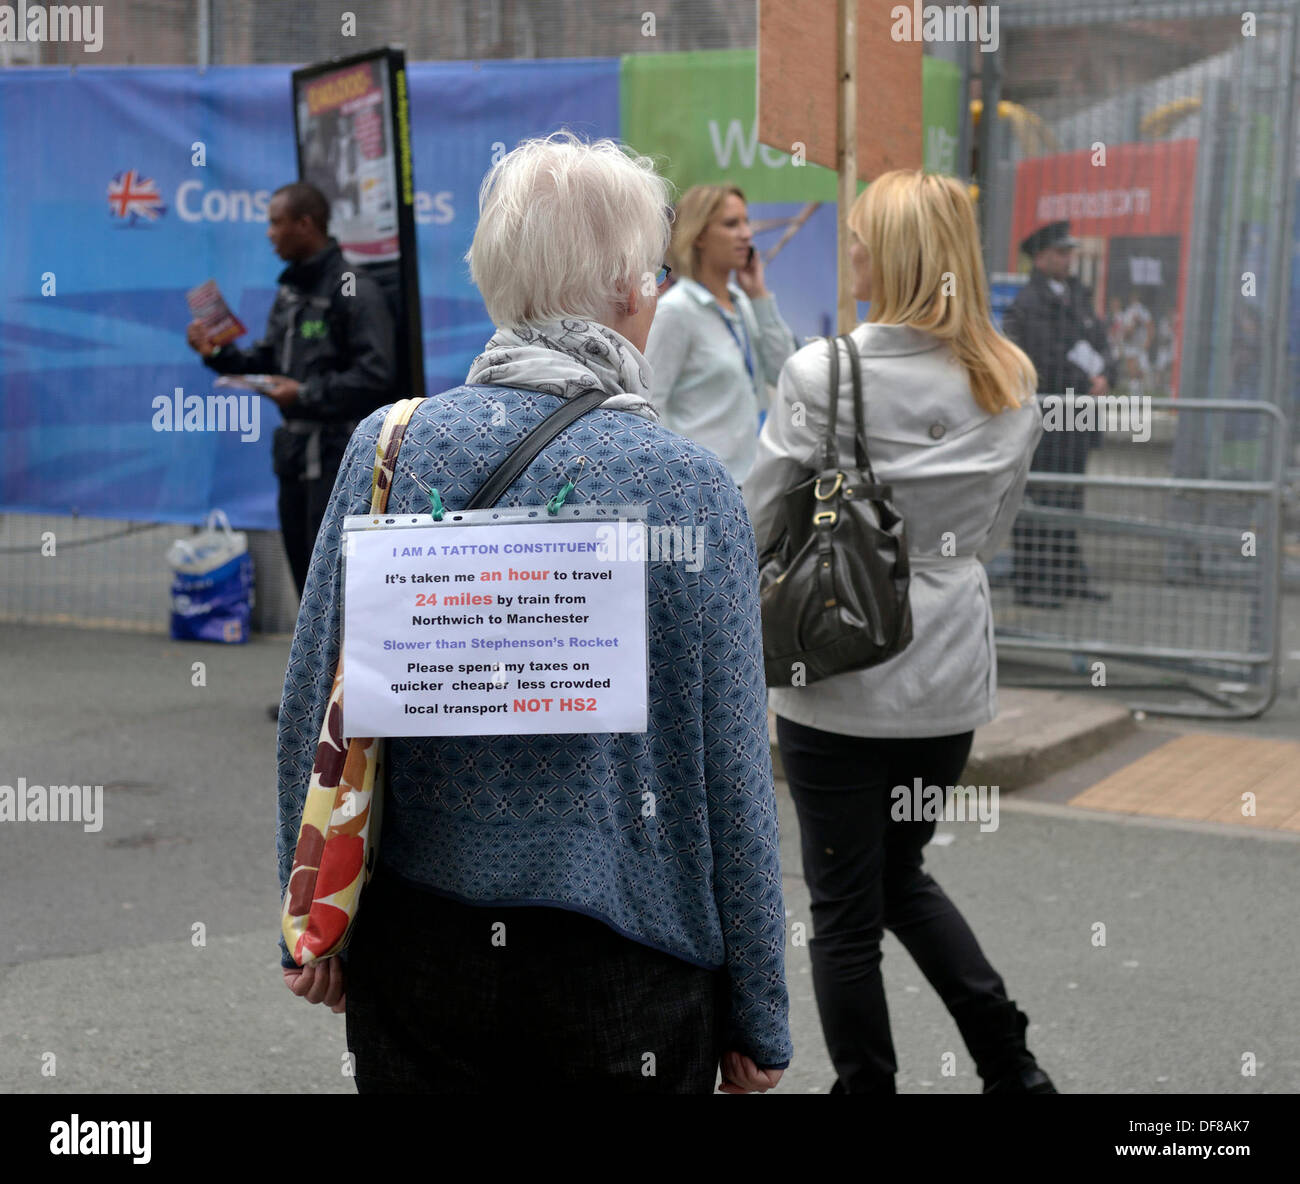 Manchester, UK . 30th Sep, 2013. A middle-aged woman has a notice on her back protesting against HS2 outside the Conservative Party Conference in Manchester. Conservative Party Conference Manchester, UK 30 September 2013 Credit:  John Fryer/Alamy Live News - Stock Image